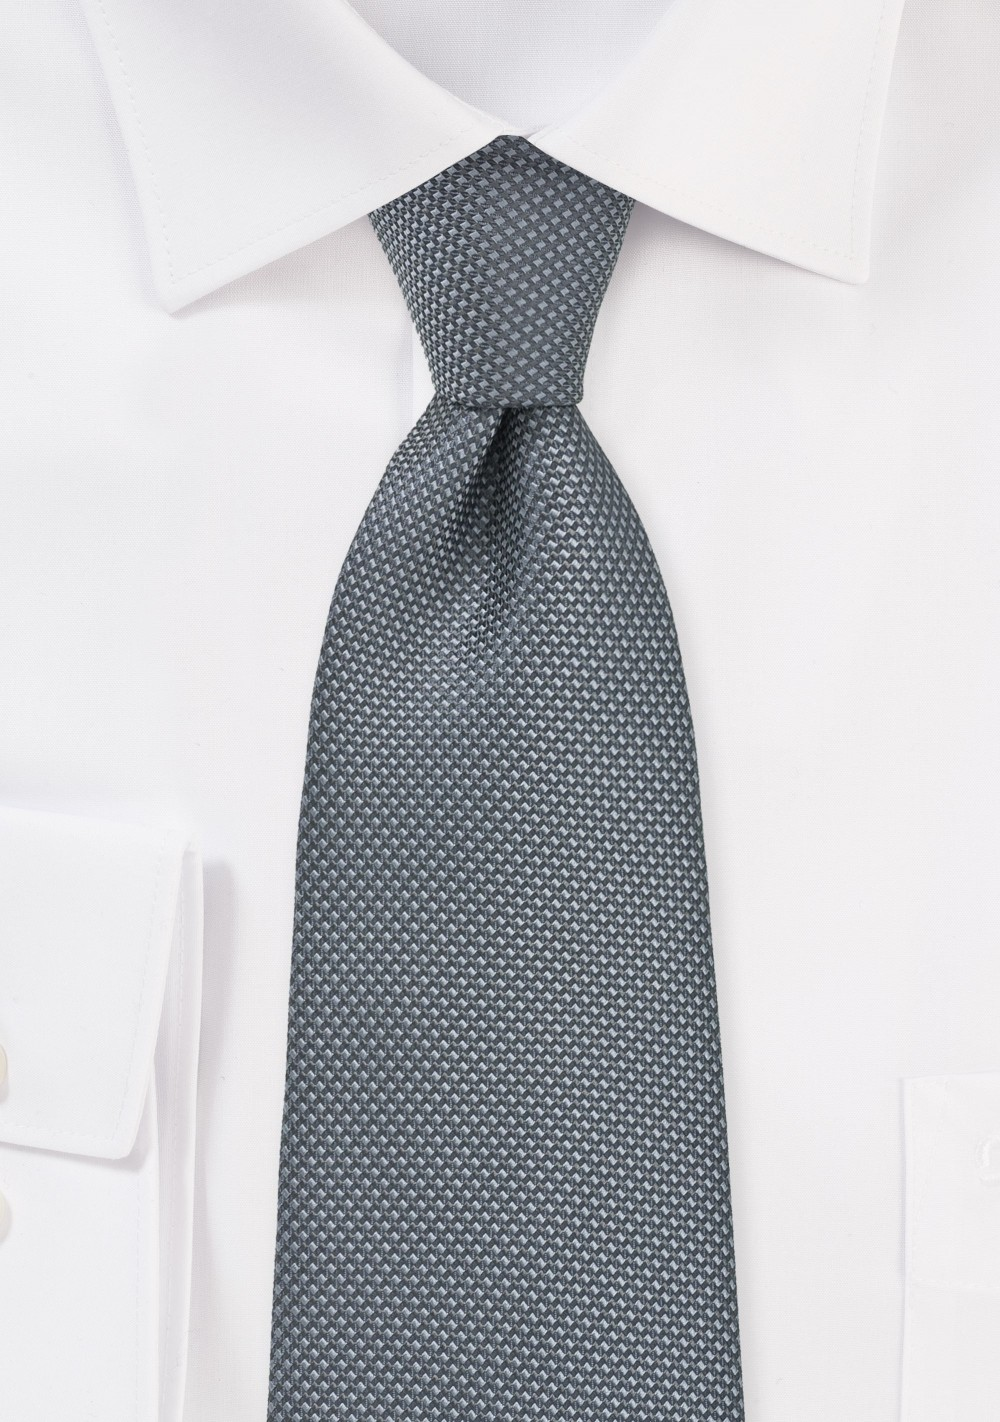 XL Length Tie in Gray with Matte Texture